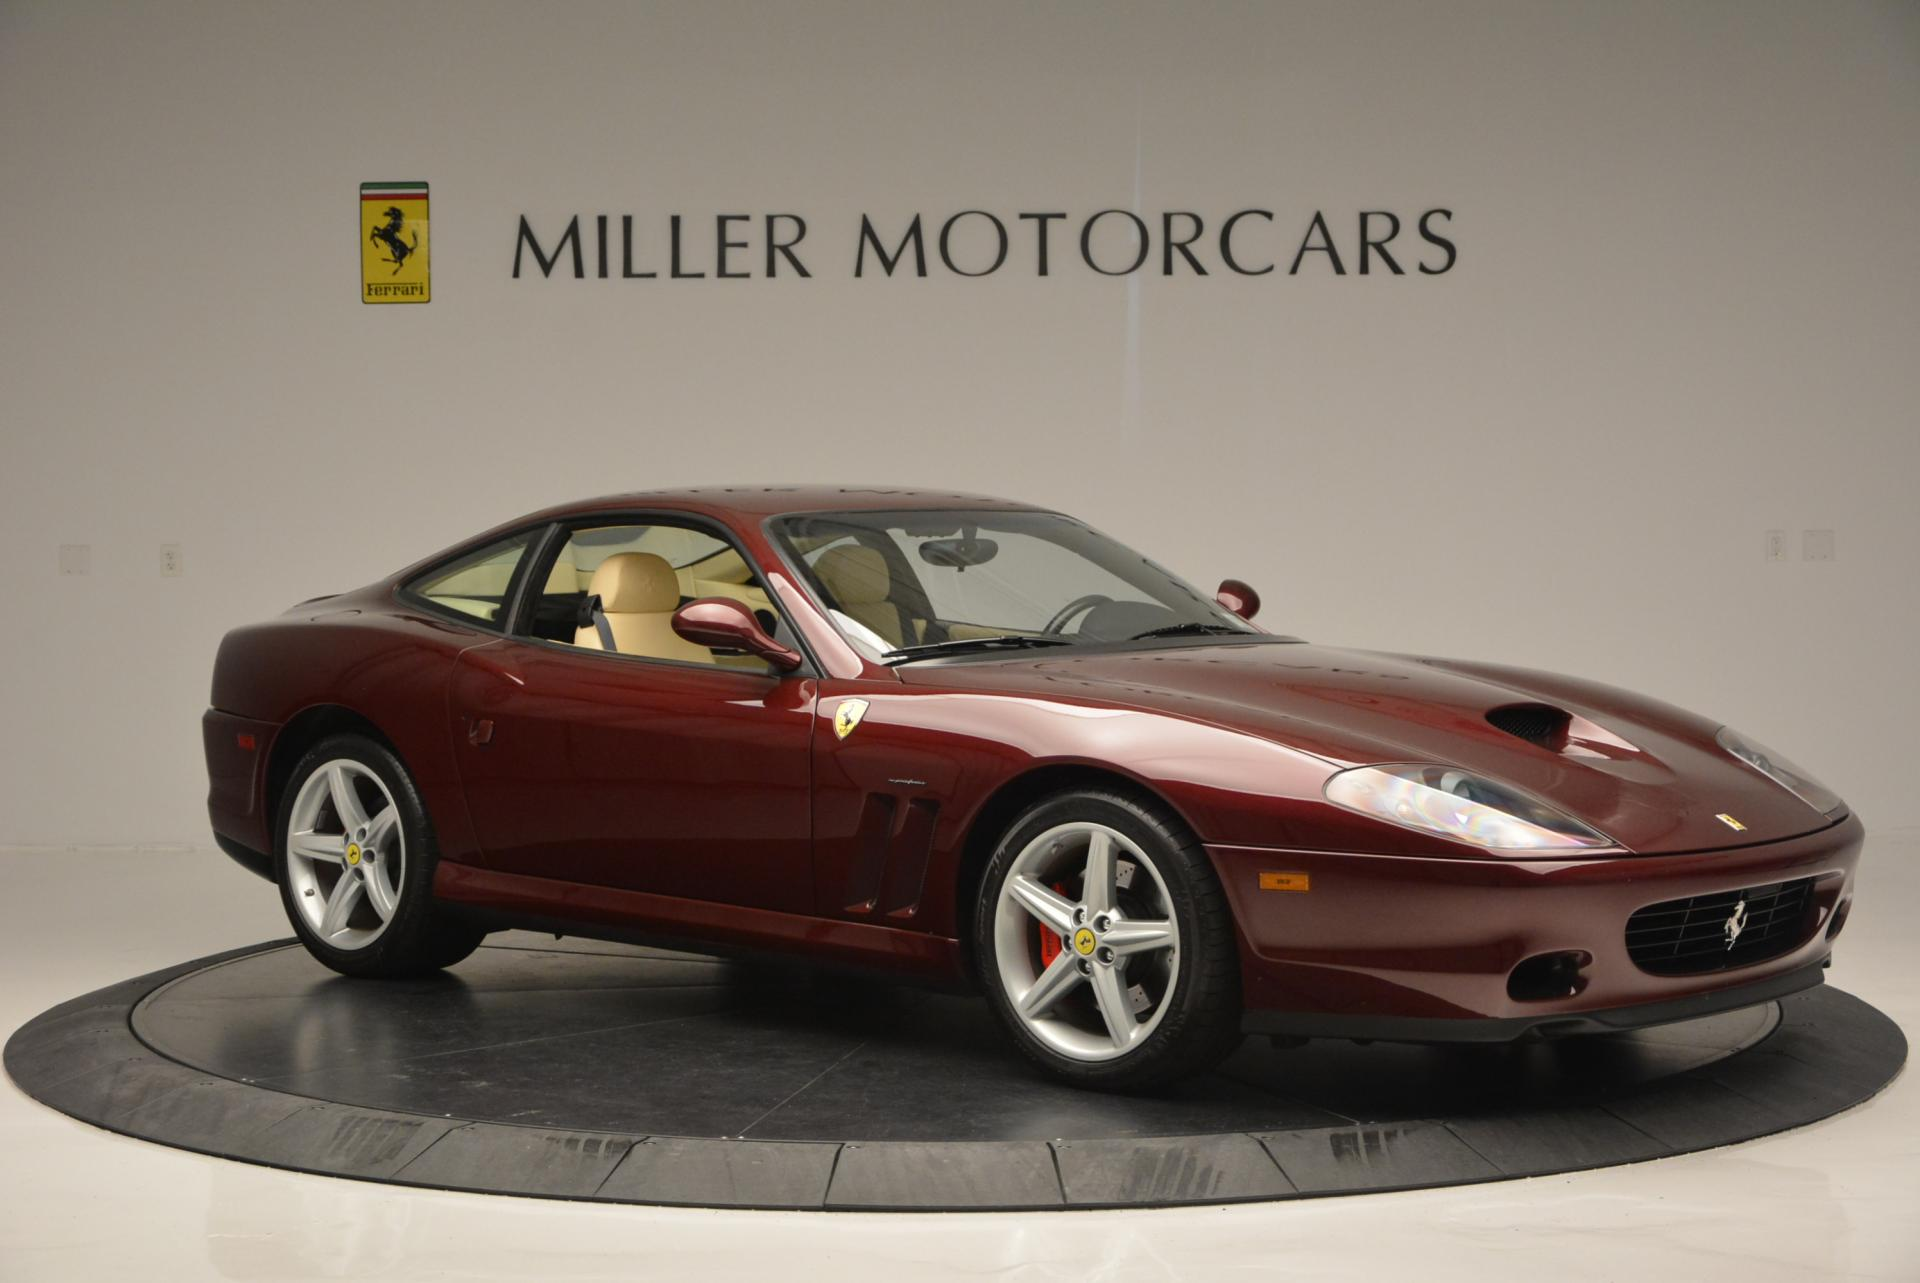 Used 2003 Ferrari 575M Maranello 6-Speed Manual For Sale In Westport, CT 143_p10